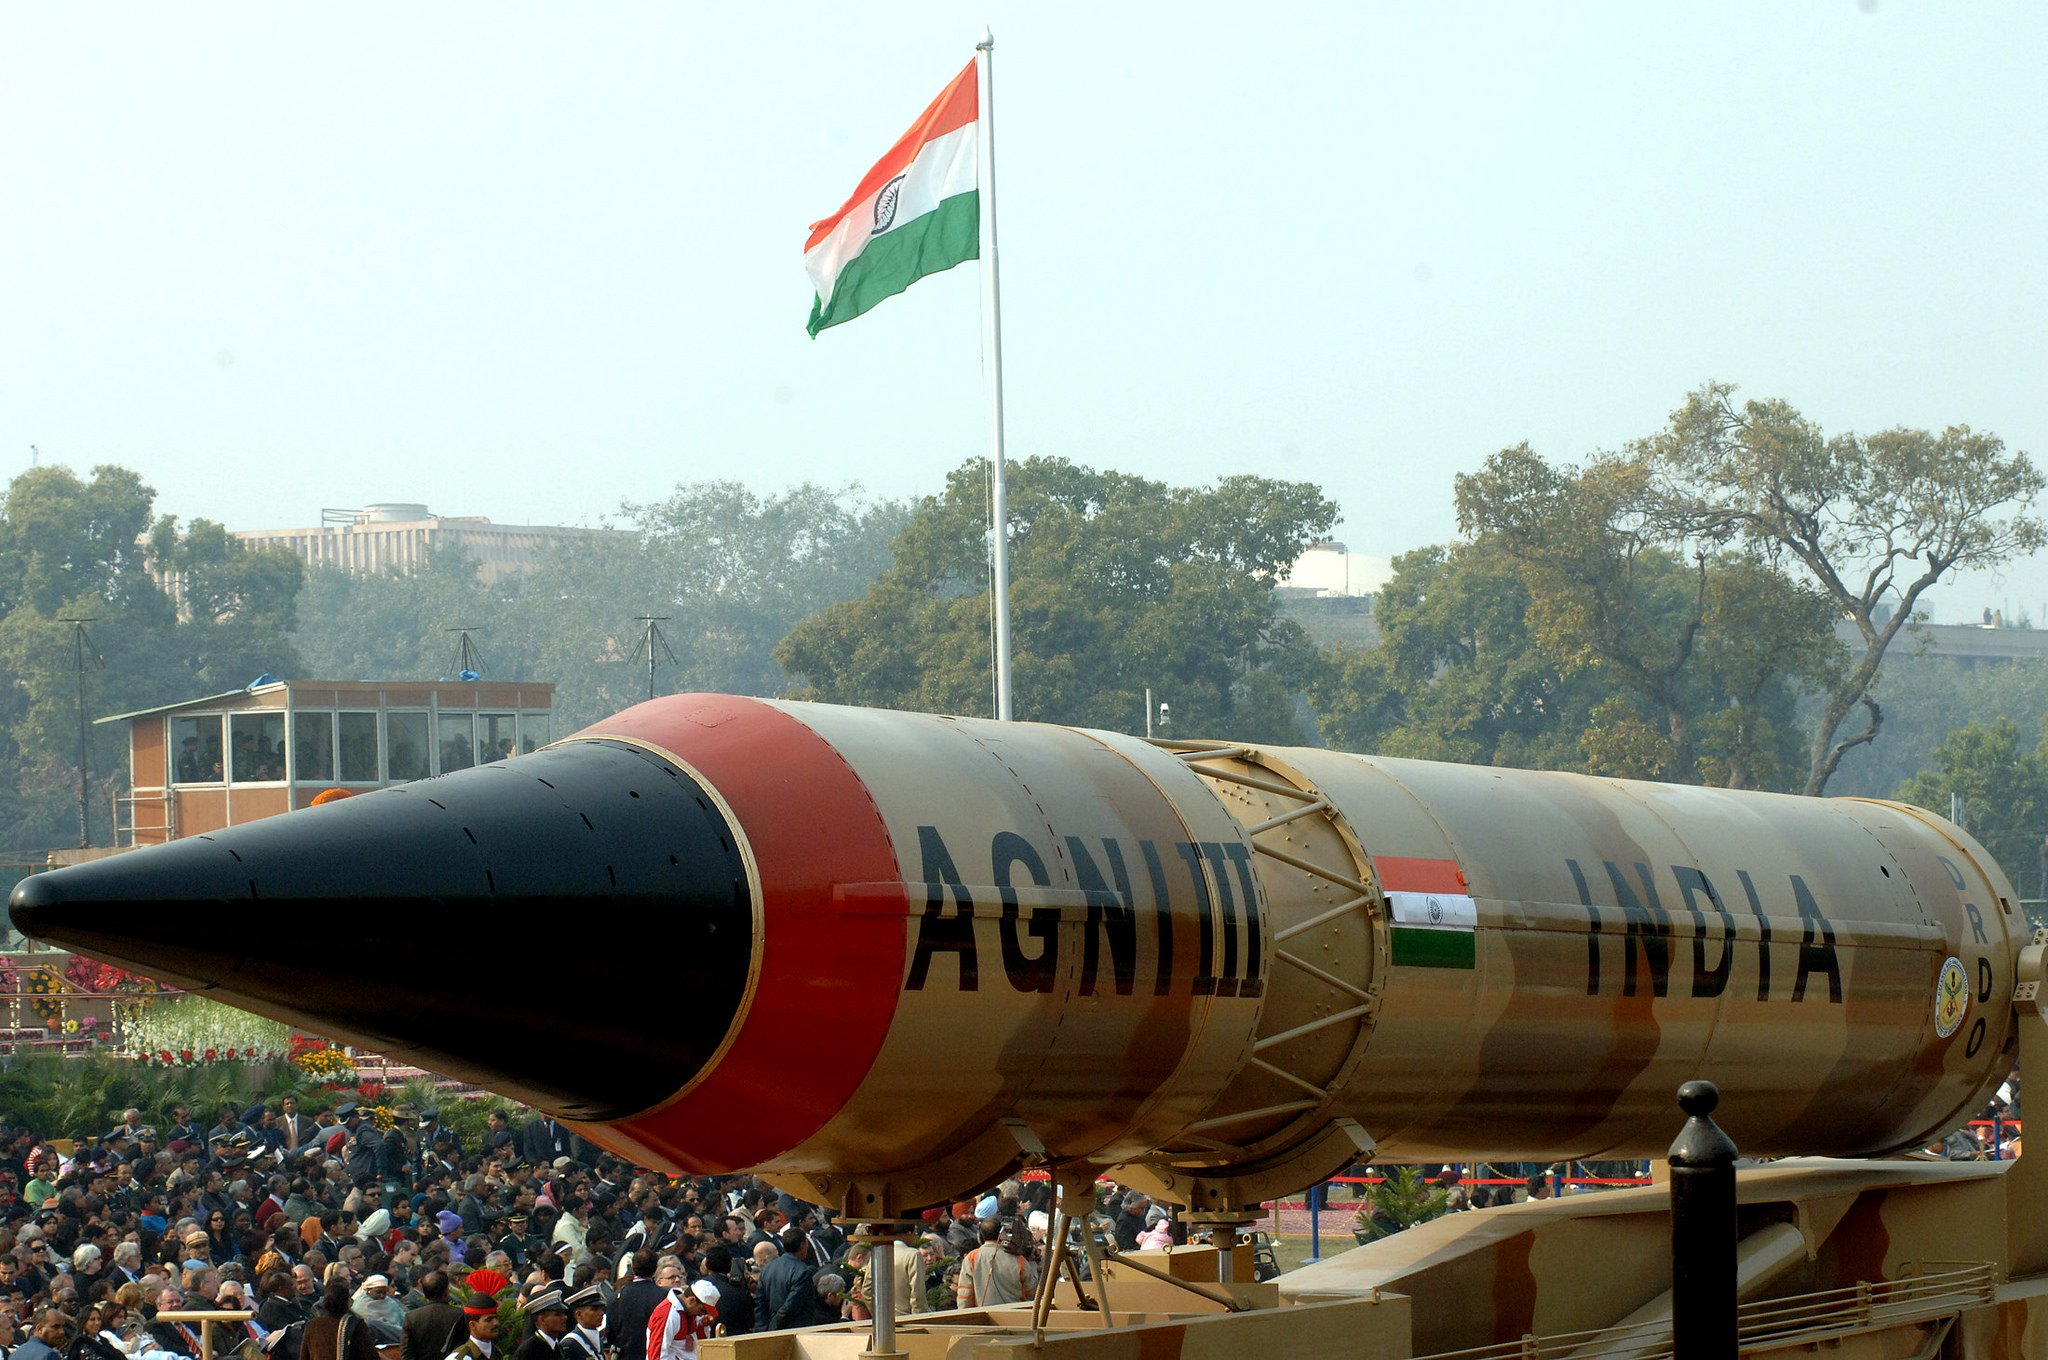 The Agni - III Missile passes through the Rajpath during the 59th Republic Day Parade - 2008, in New Delhi on January 26, 2008.